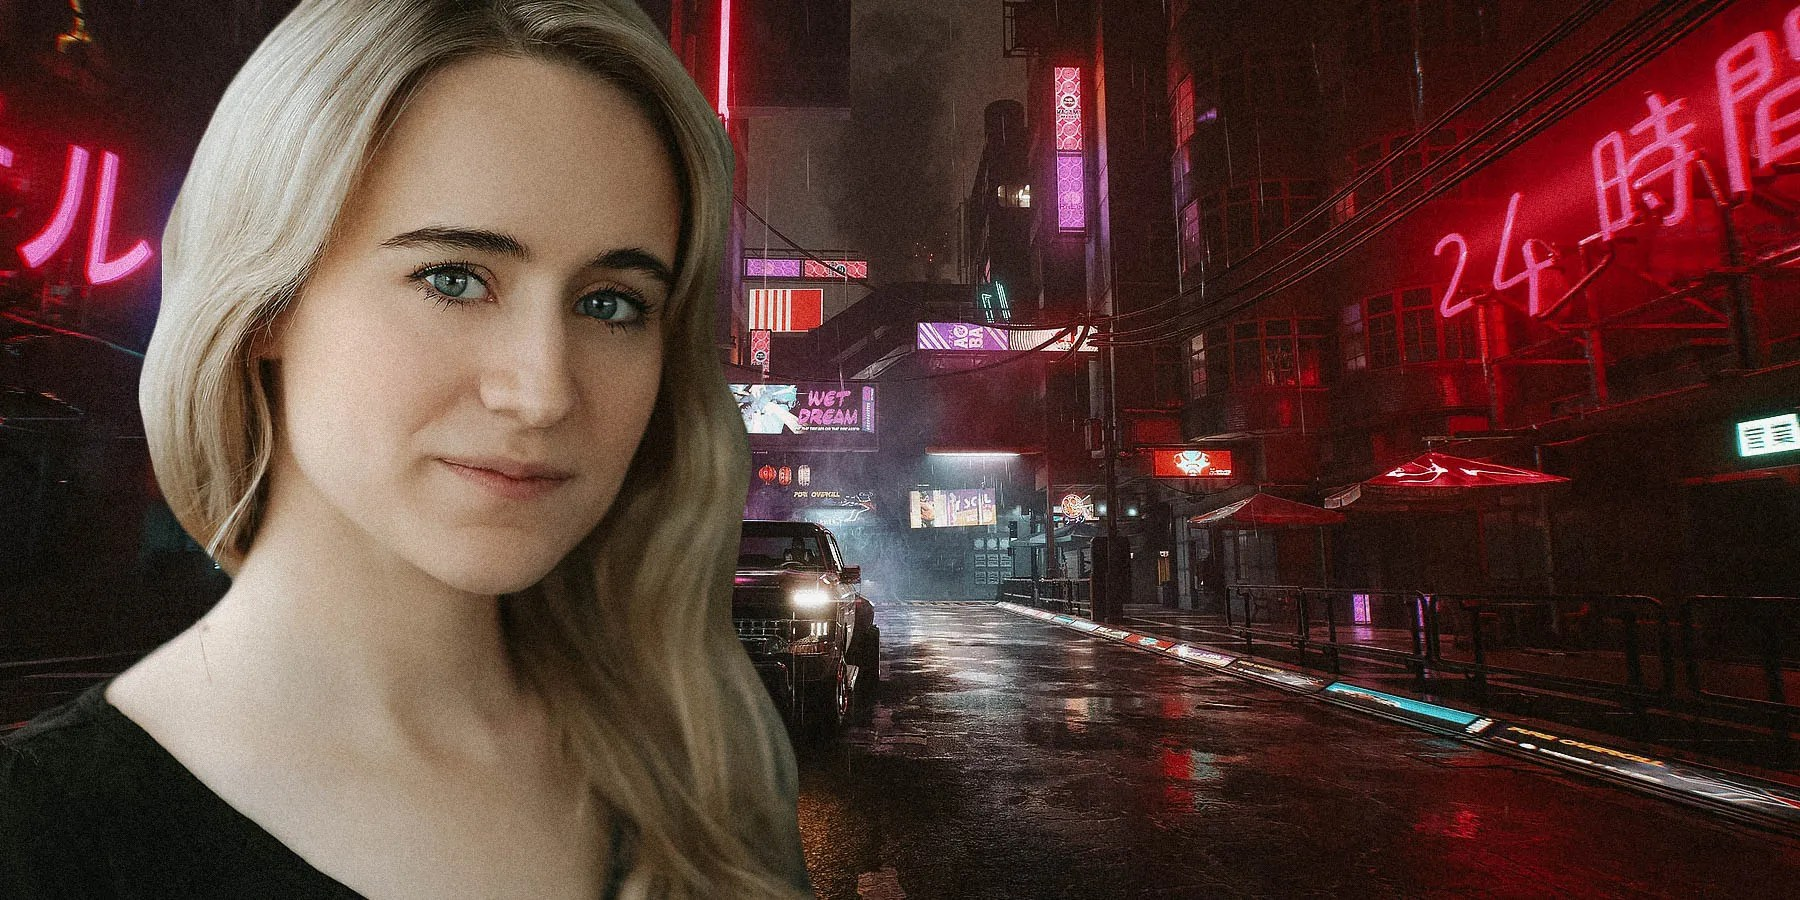 Cyberpunk 2077 Voice Actress Expresses Confidence in the Game 'Once the Bug Are Ironed Out'